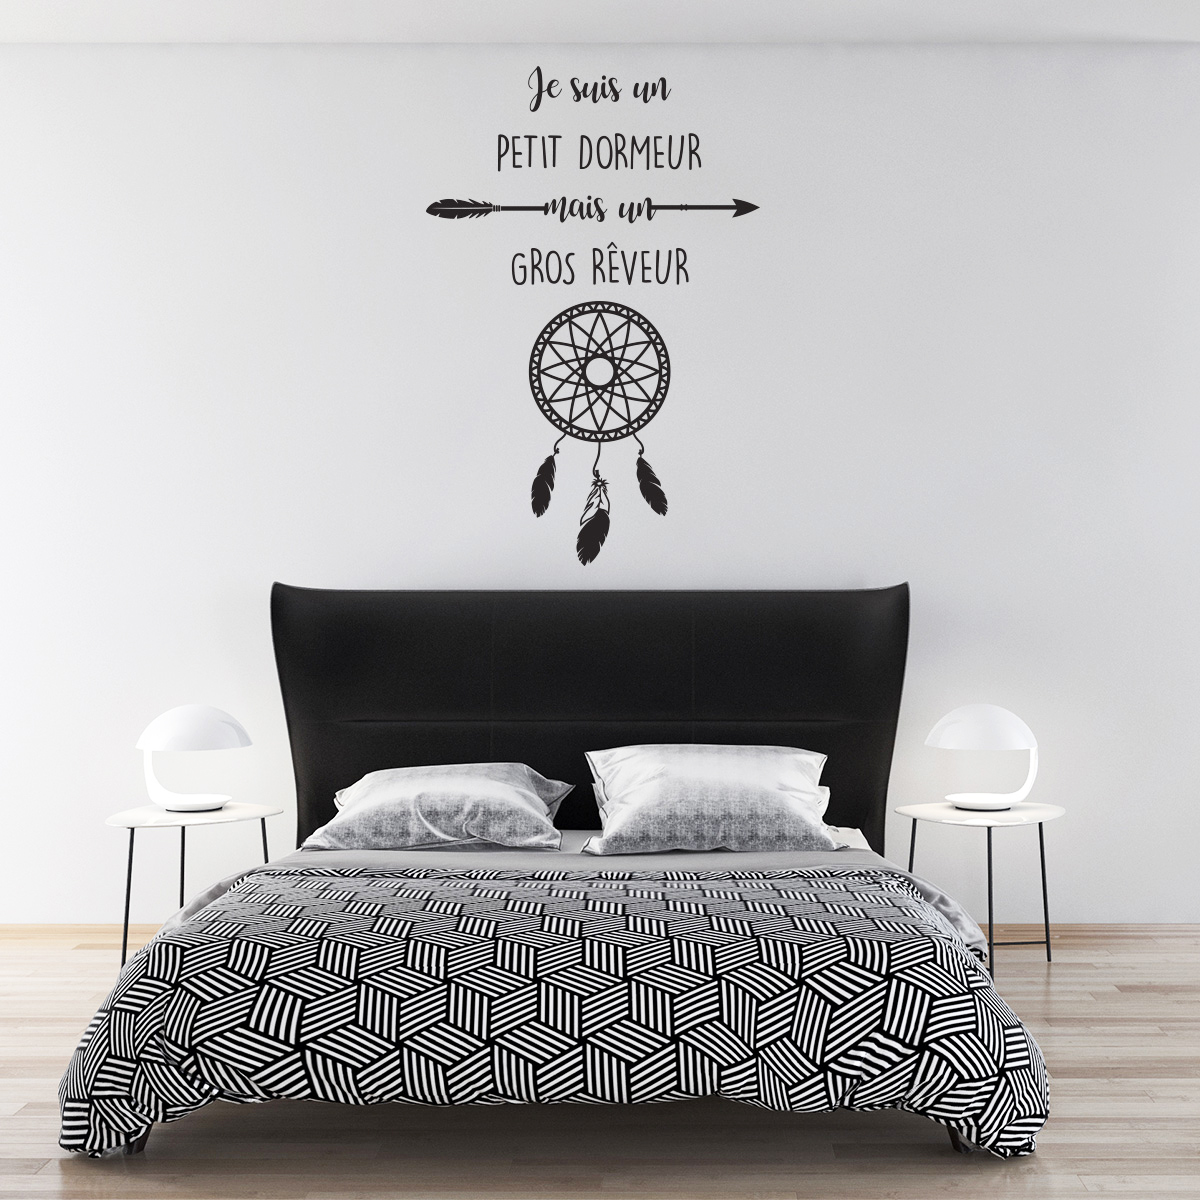 stickers salle de bain texte. Black Bedroom Furniture Sets. Home Design Ideas